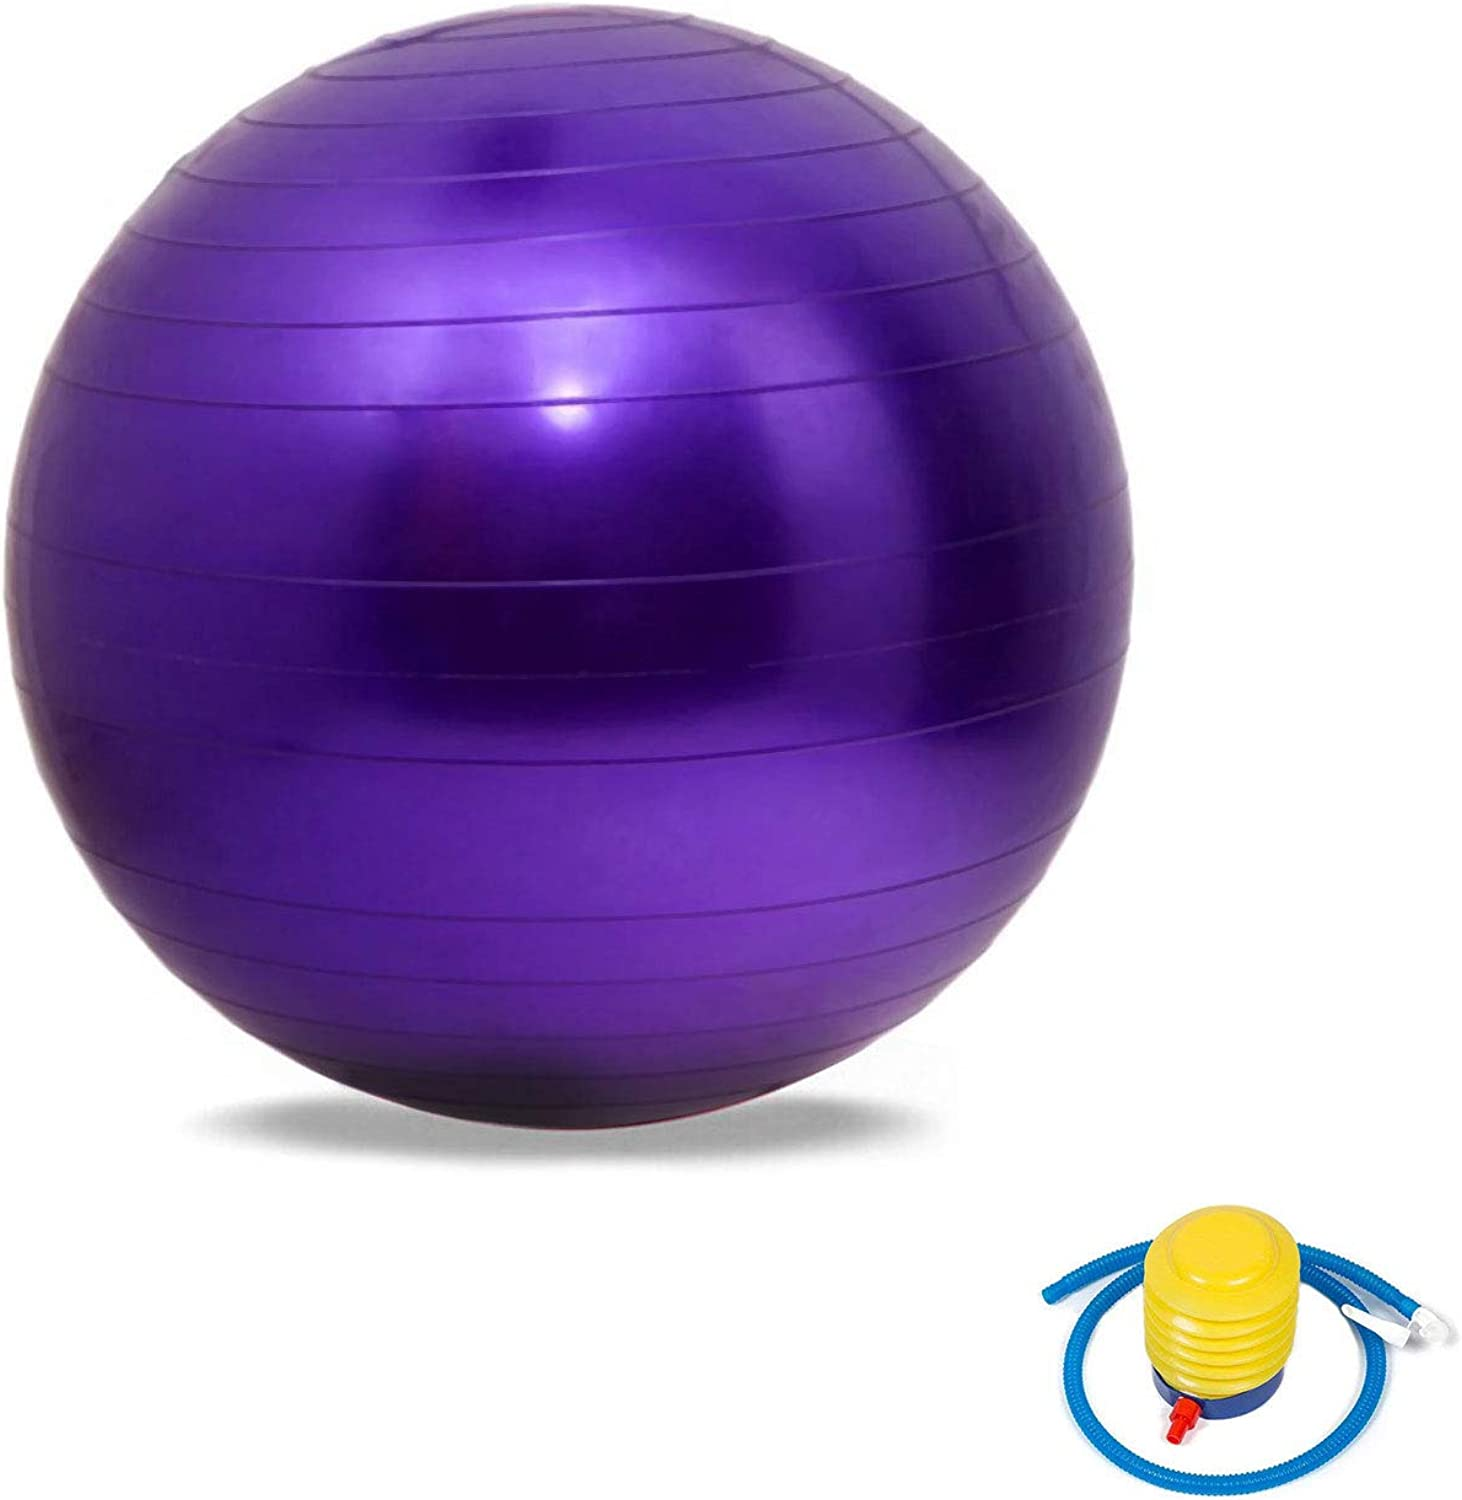 Swiss Exercise Ball Anti Burst Yoga Gym Ball Extra Thick Gymnastics Ball,Ball Chair, Birthing Ball with Improved Hand Pump for Fitness, Gym, Yoga, Pilates  Suitable for Men & Woman